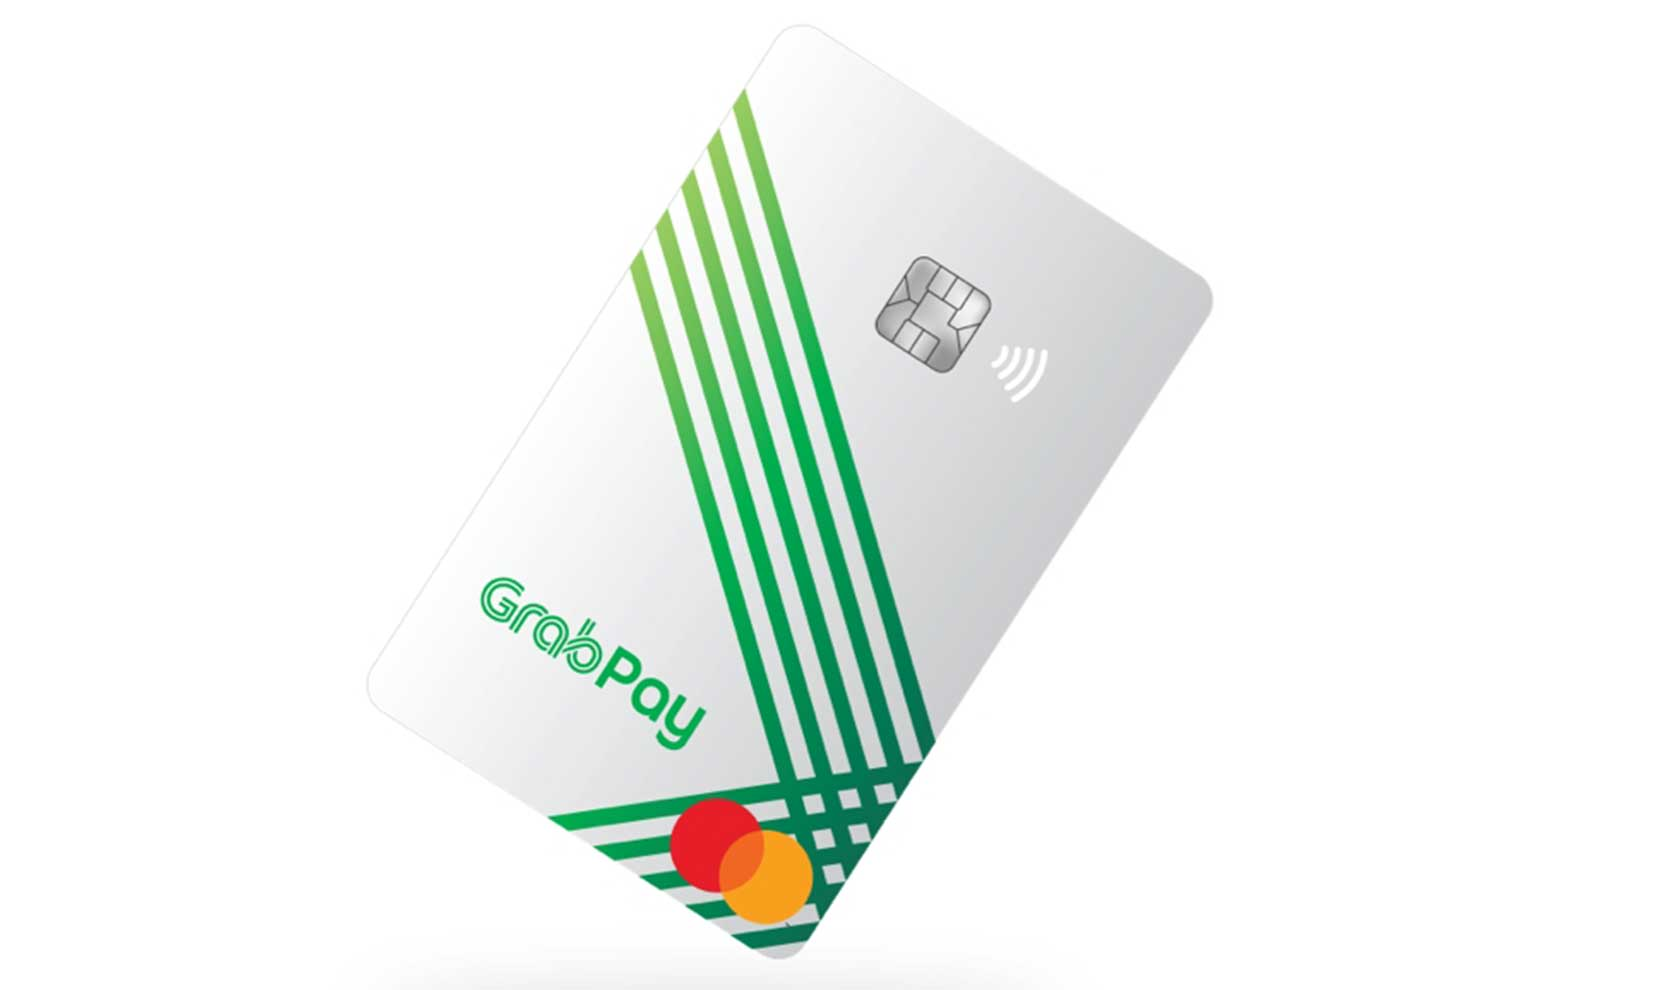 grab-launches-new-digital-card